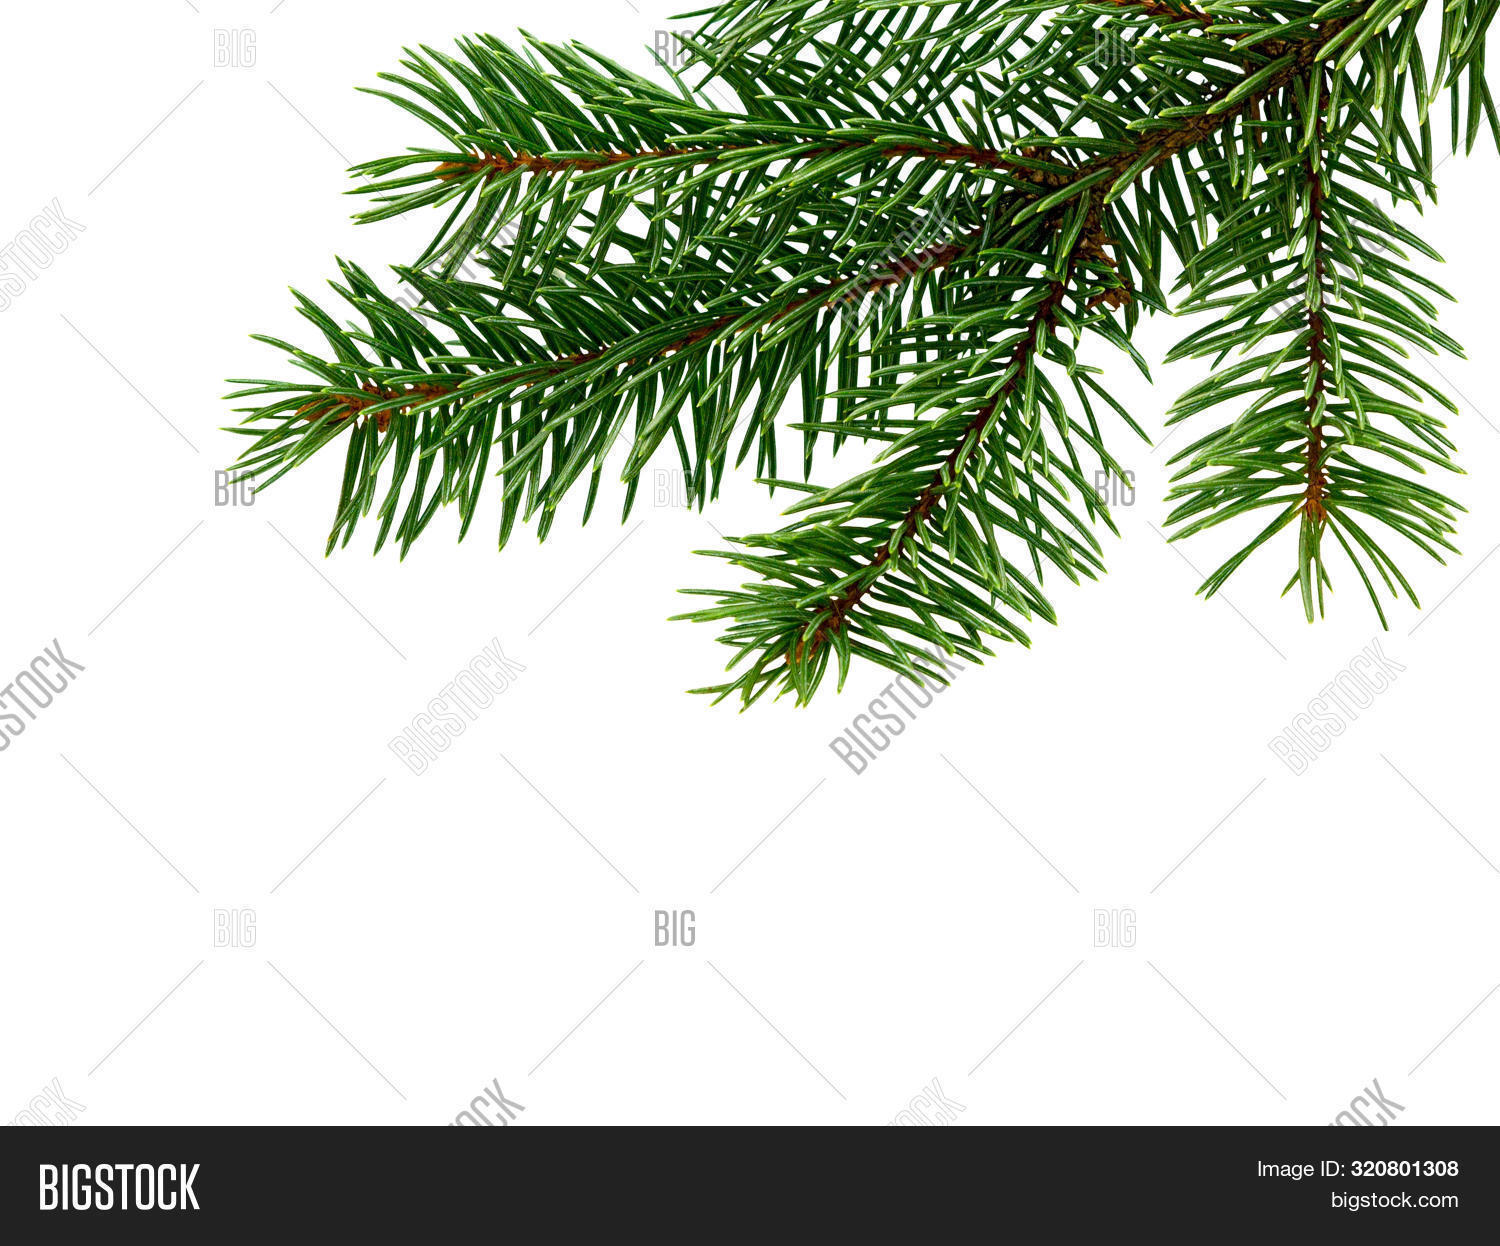 Fir Tree Branch Isolated On White Background. Pine Branch. Christmas Background.